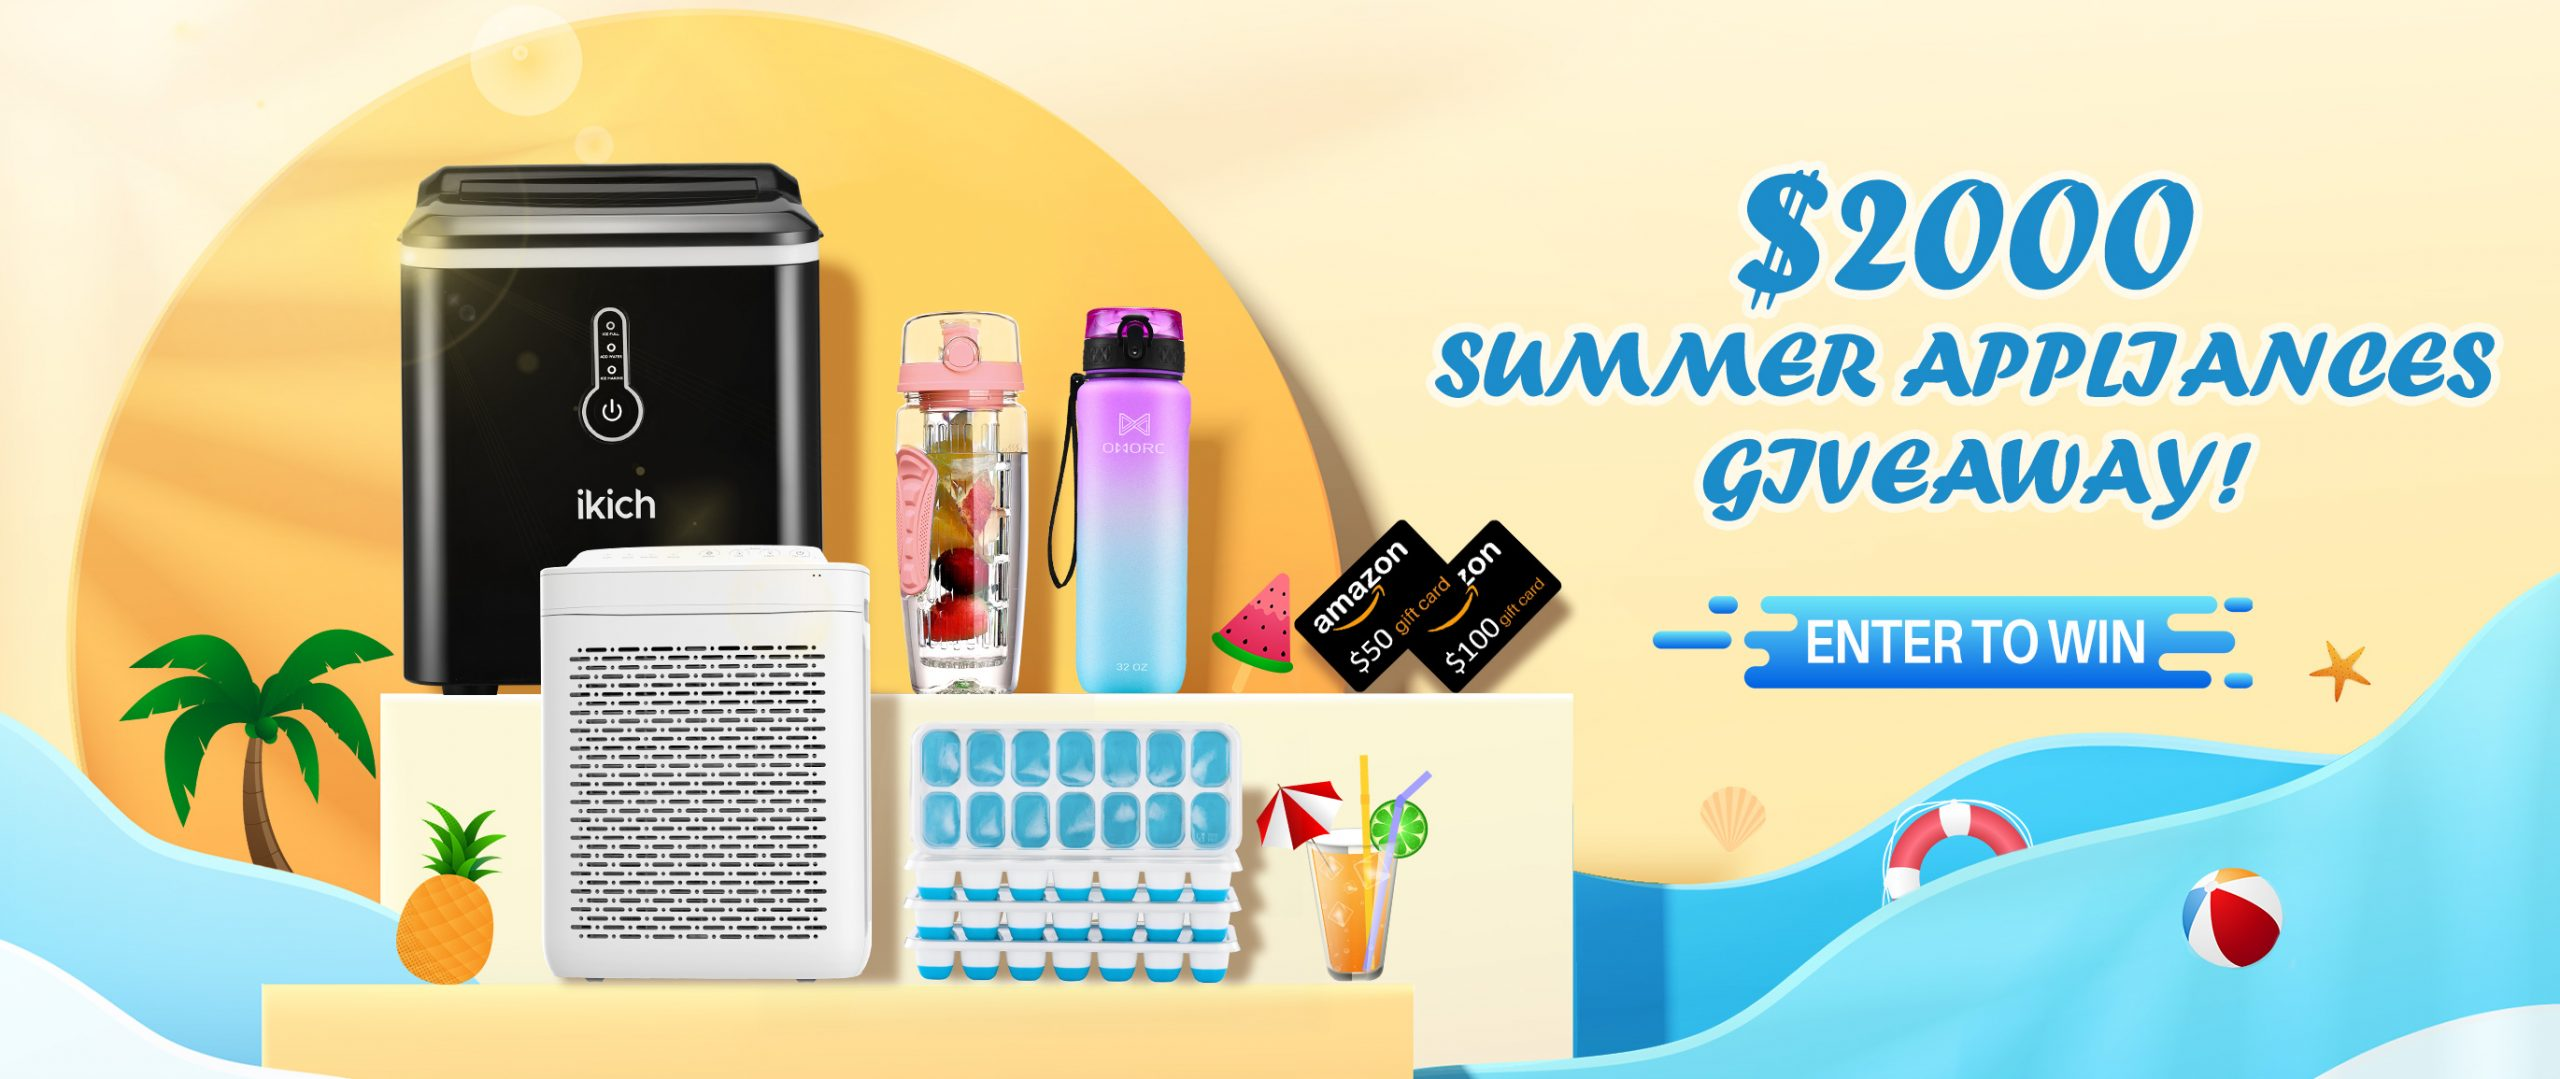 Instantly Spin to Win $2000 Summer Home Appliances! Giveaway